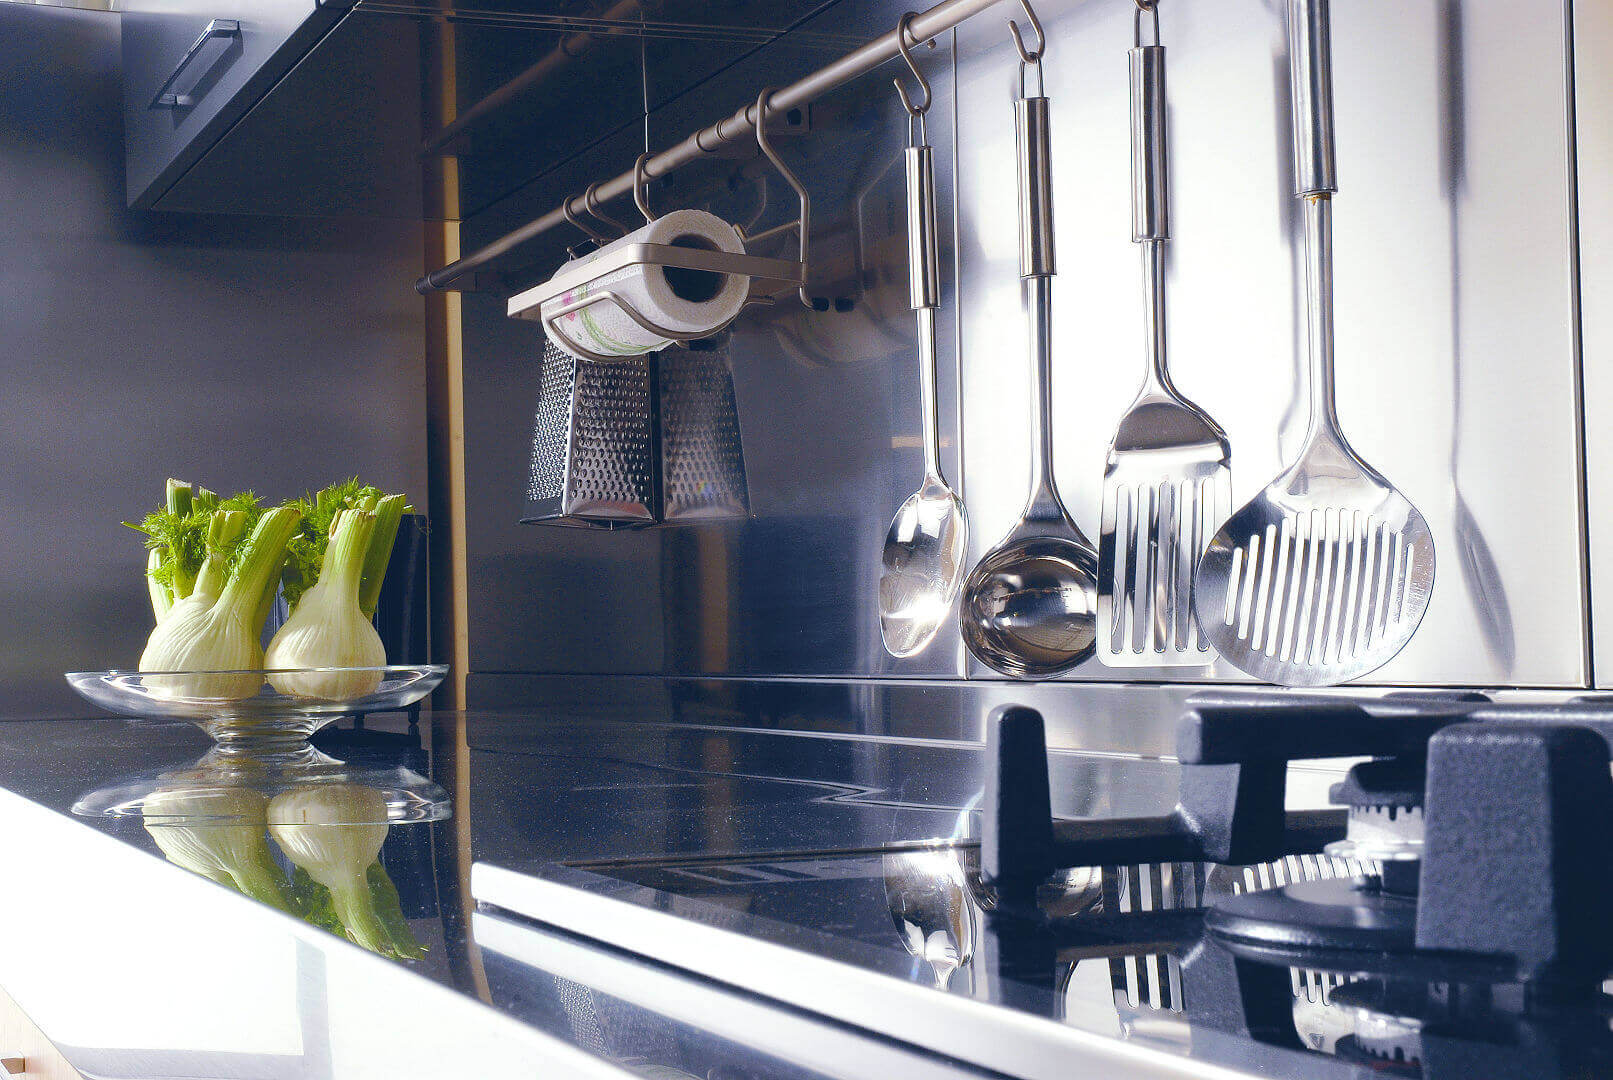 Arca Cucine Italy - Kitchen Stainless Steel - Quadra